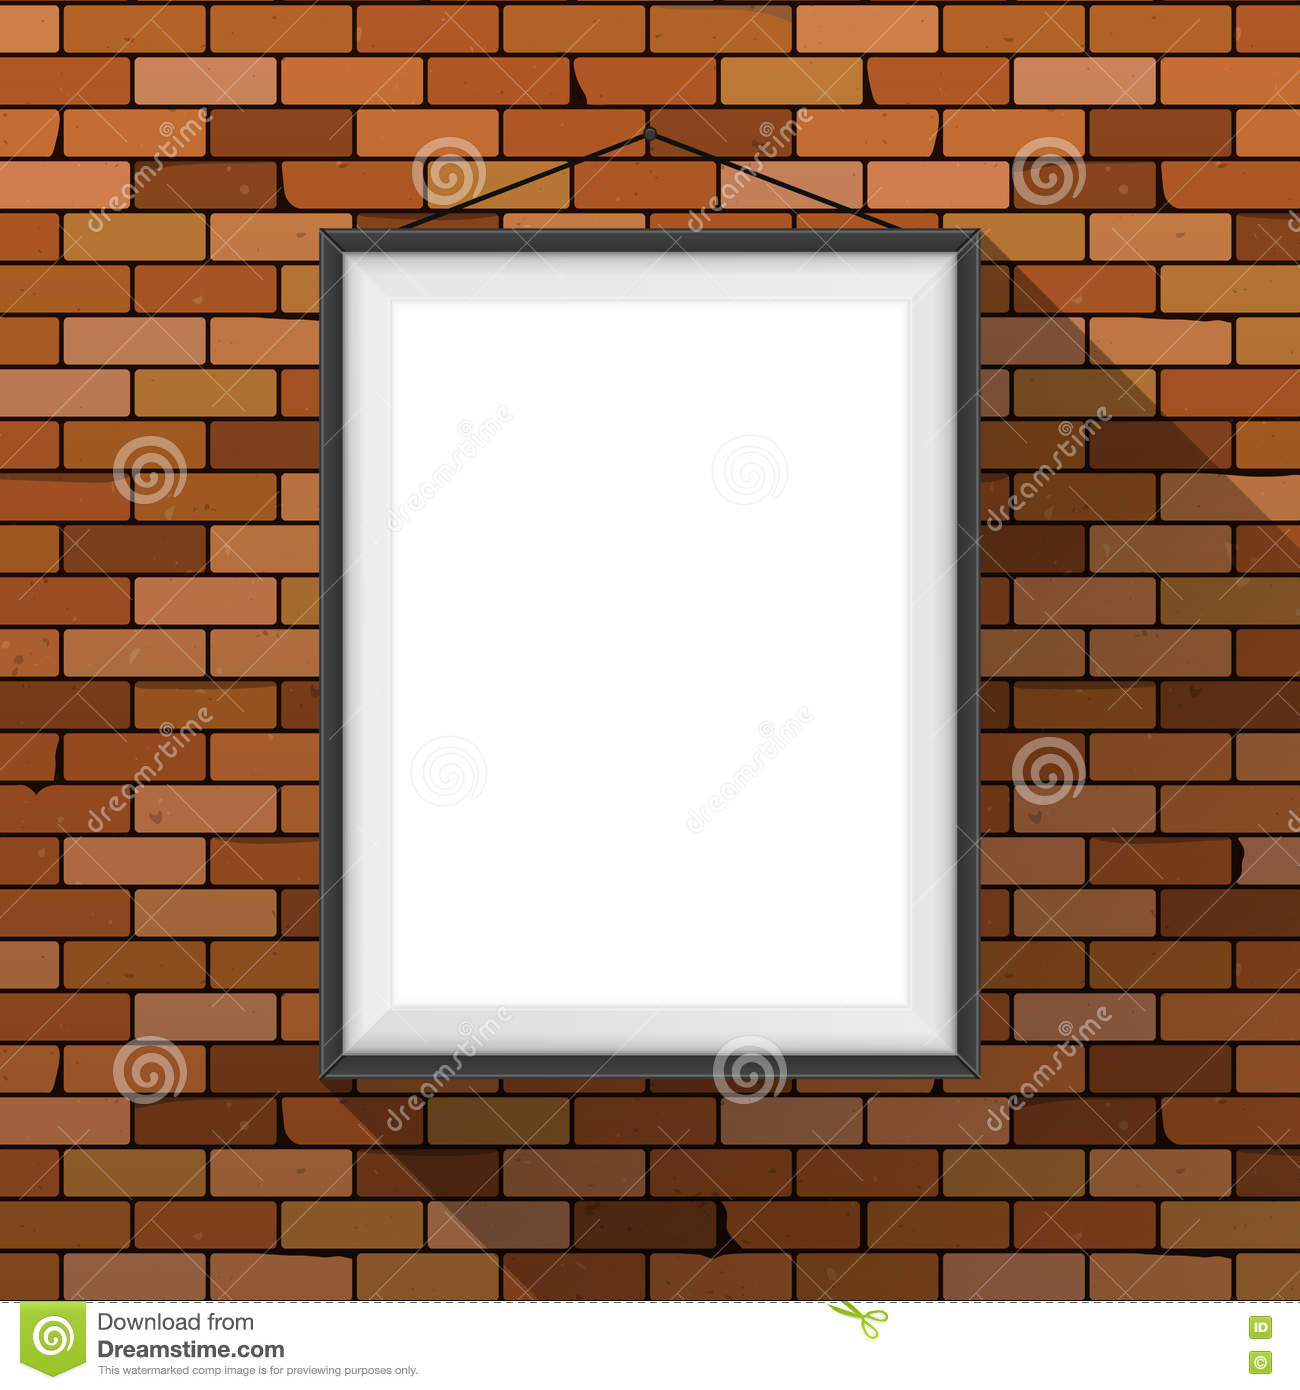 Vector mockup. White poster with black frame hanging on a dark red brick wall. Empty blank. Grunge brickwork background